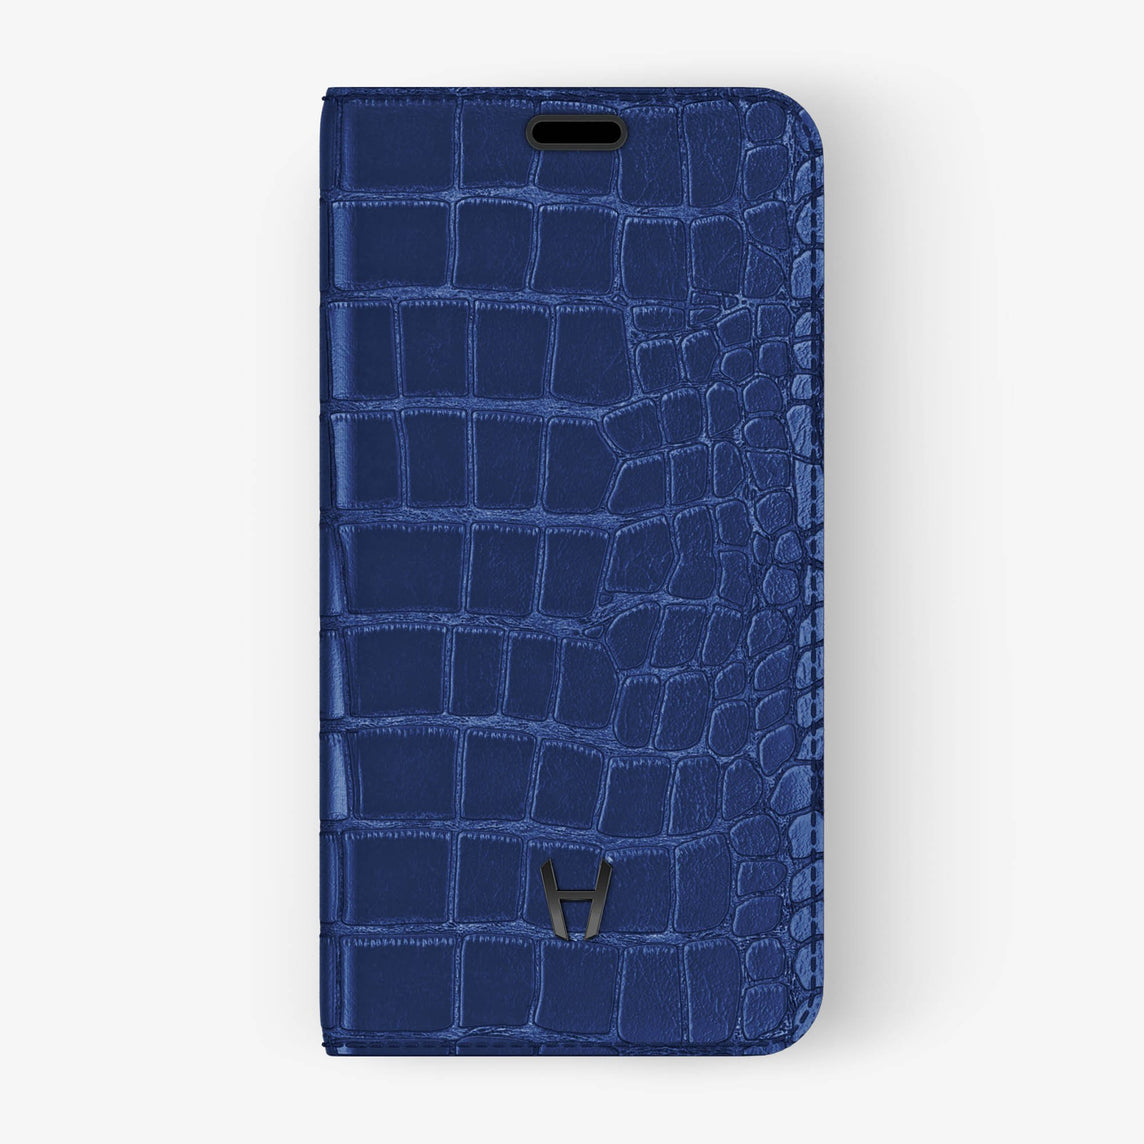 Alligator [iPhone Folio Case] [model:iphone-xr-case] [colour:navy-blue] [finishing:black]